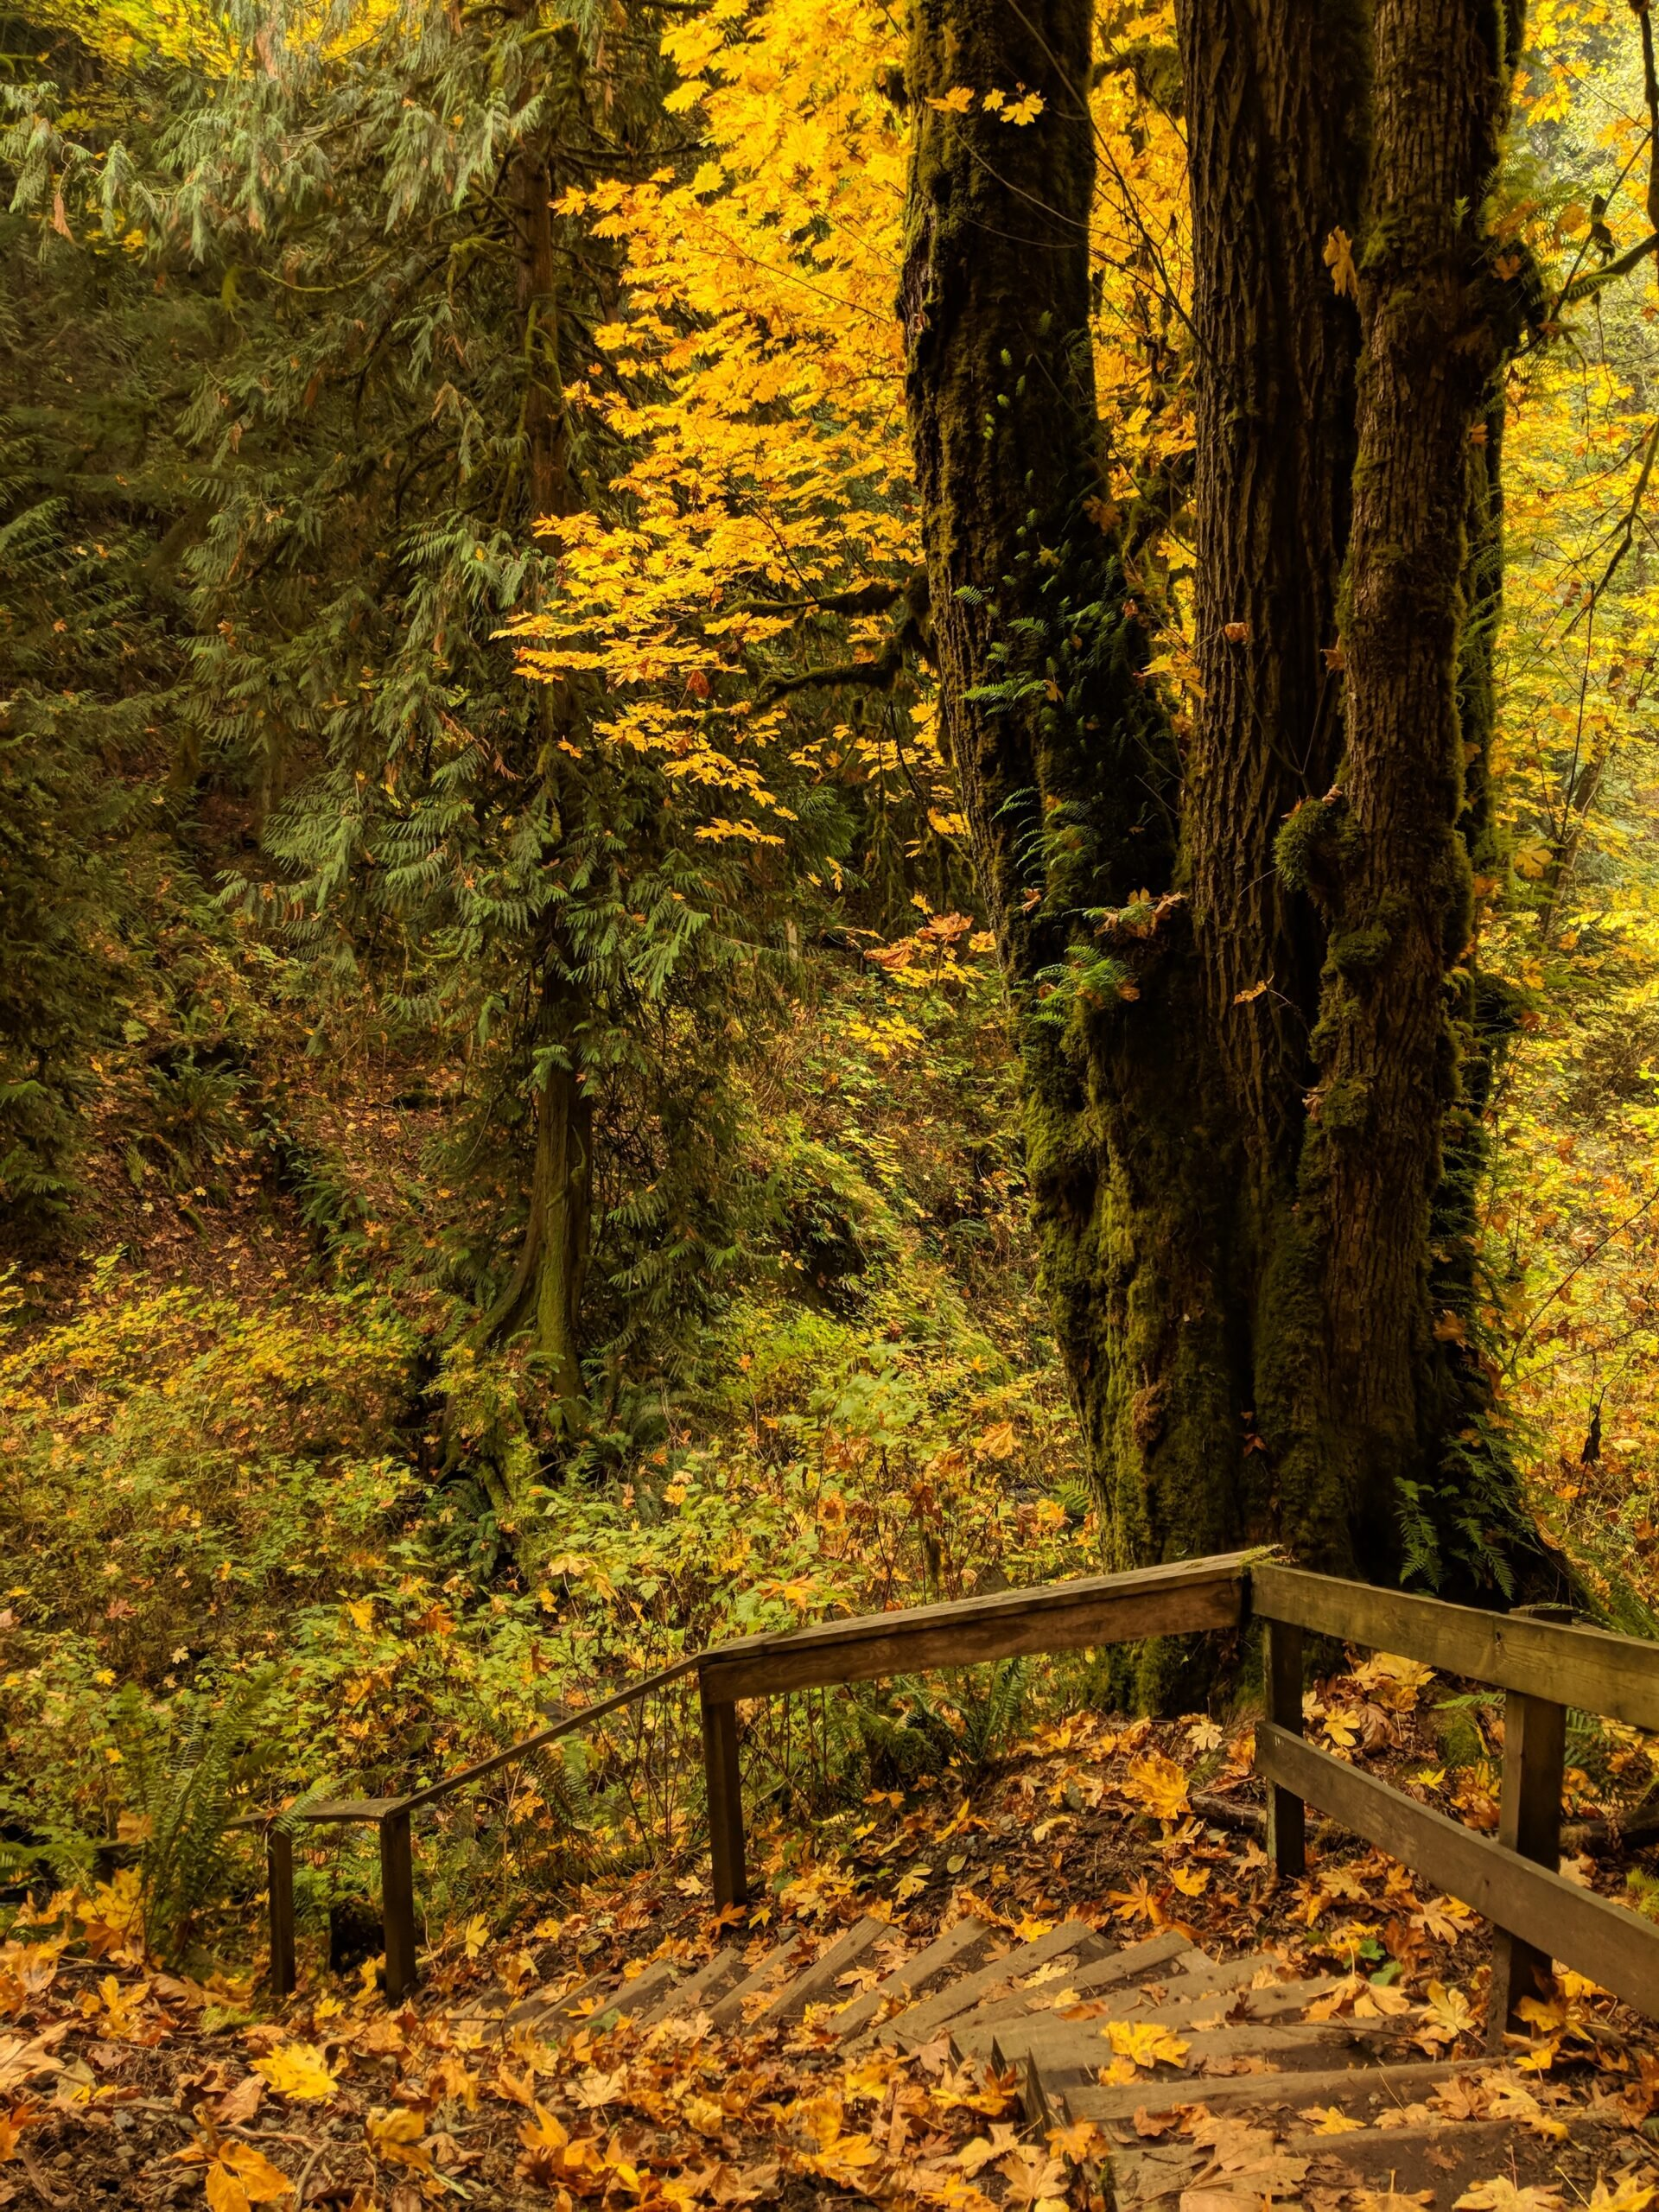 Autumn light on a forest staircase in a state park in washington.